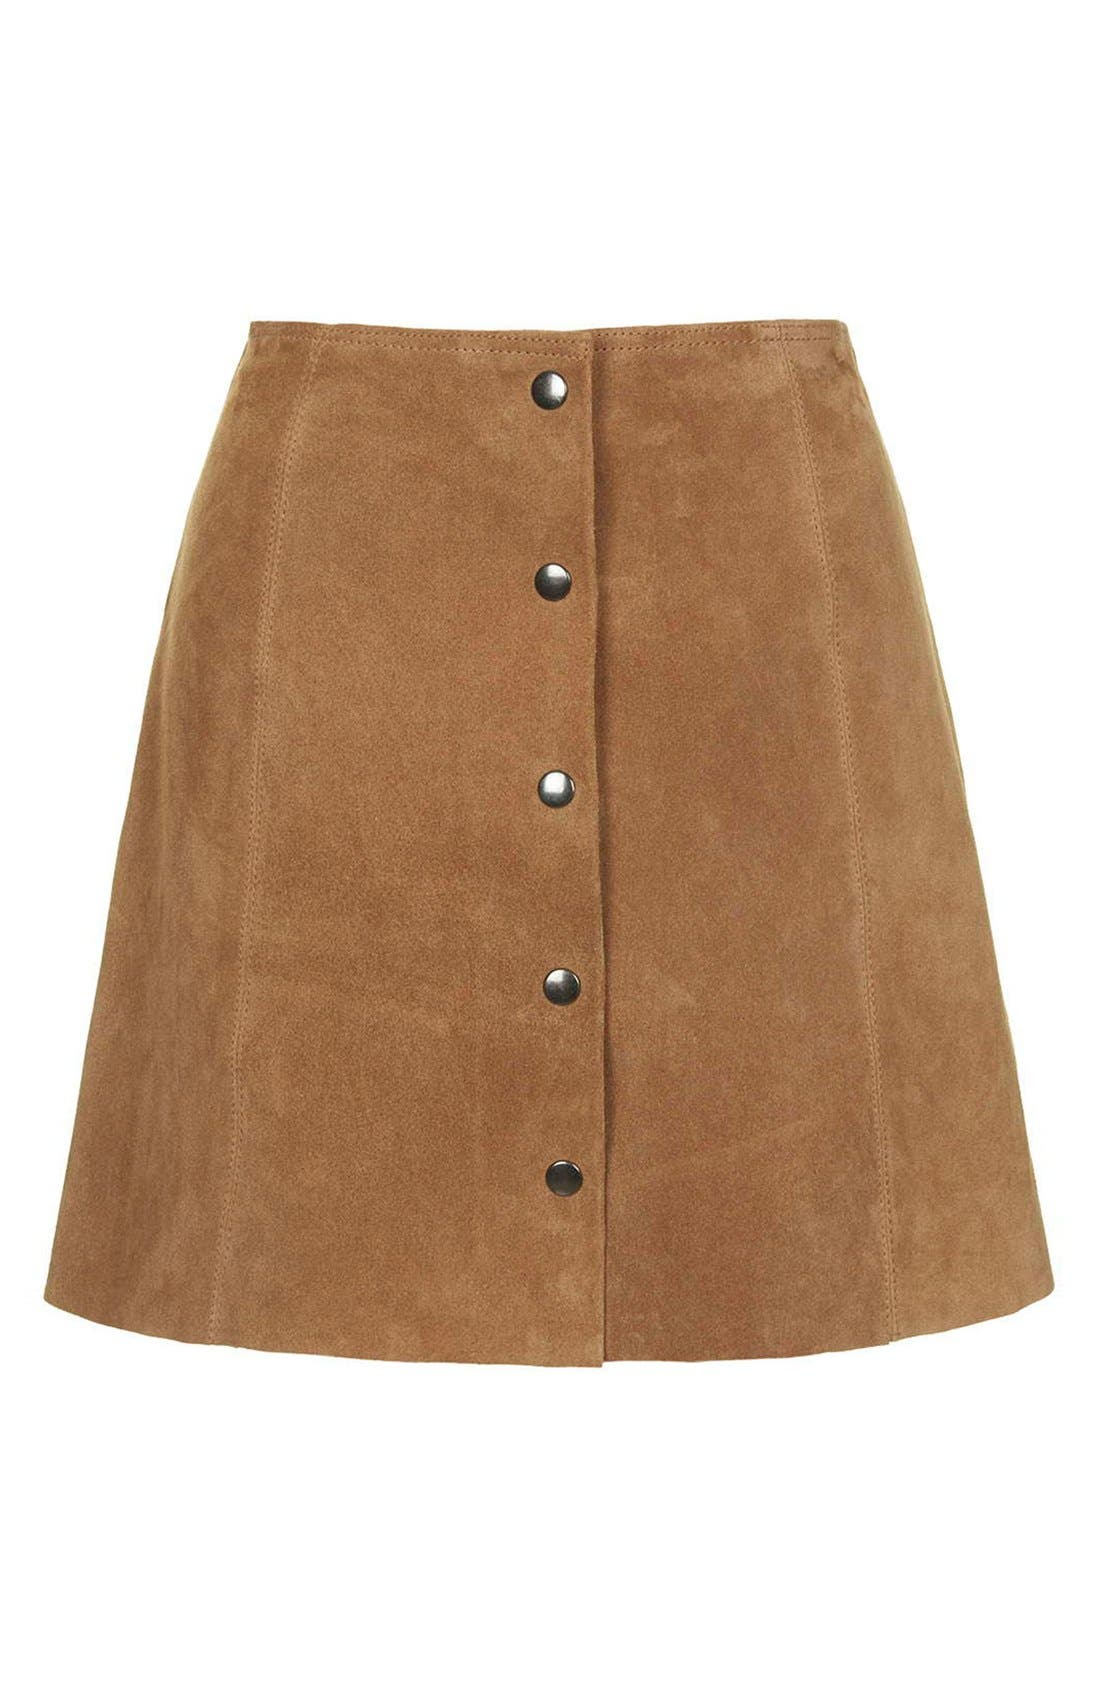 Suede A-Line Skirt,                             Alternate thumbnail 4, color,                             210